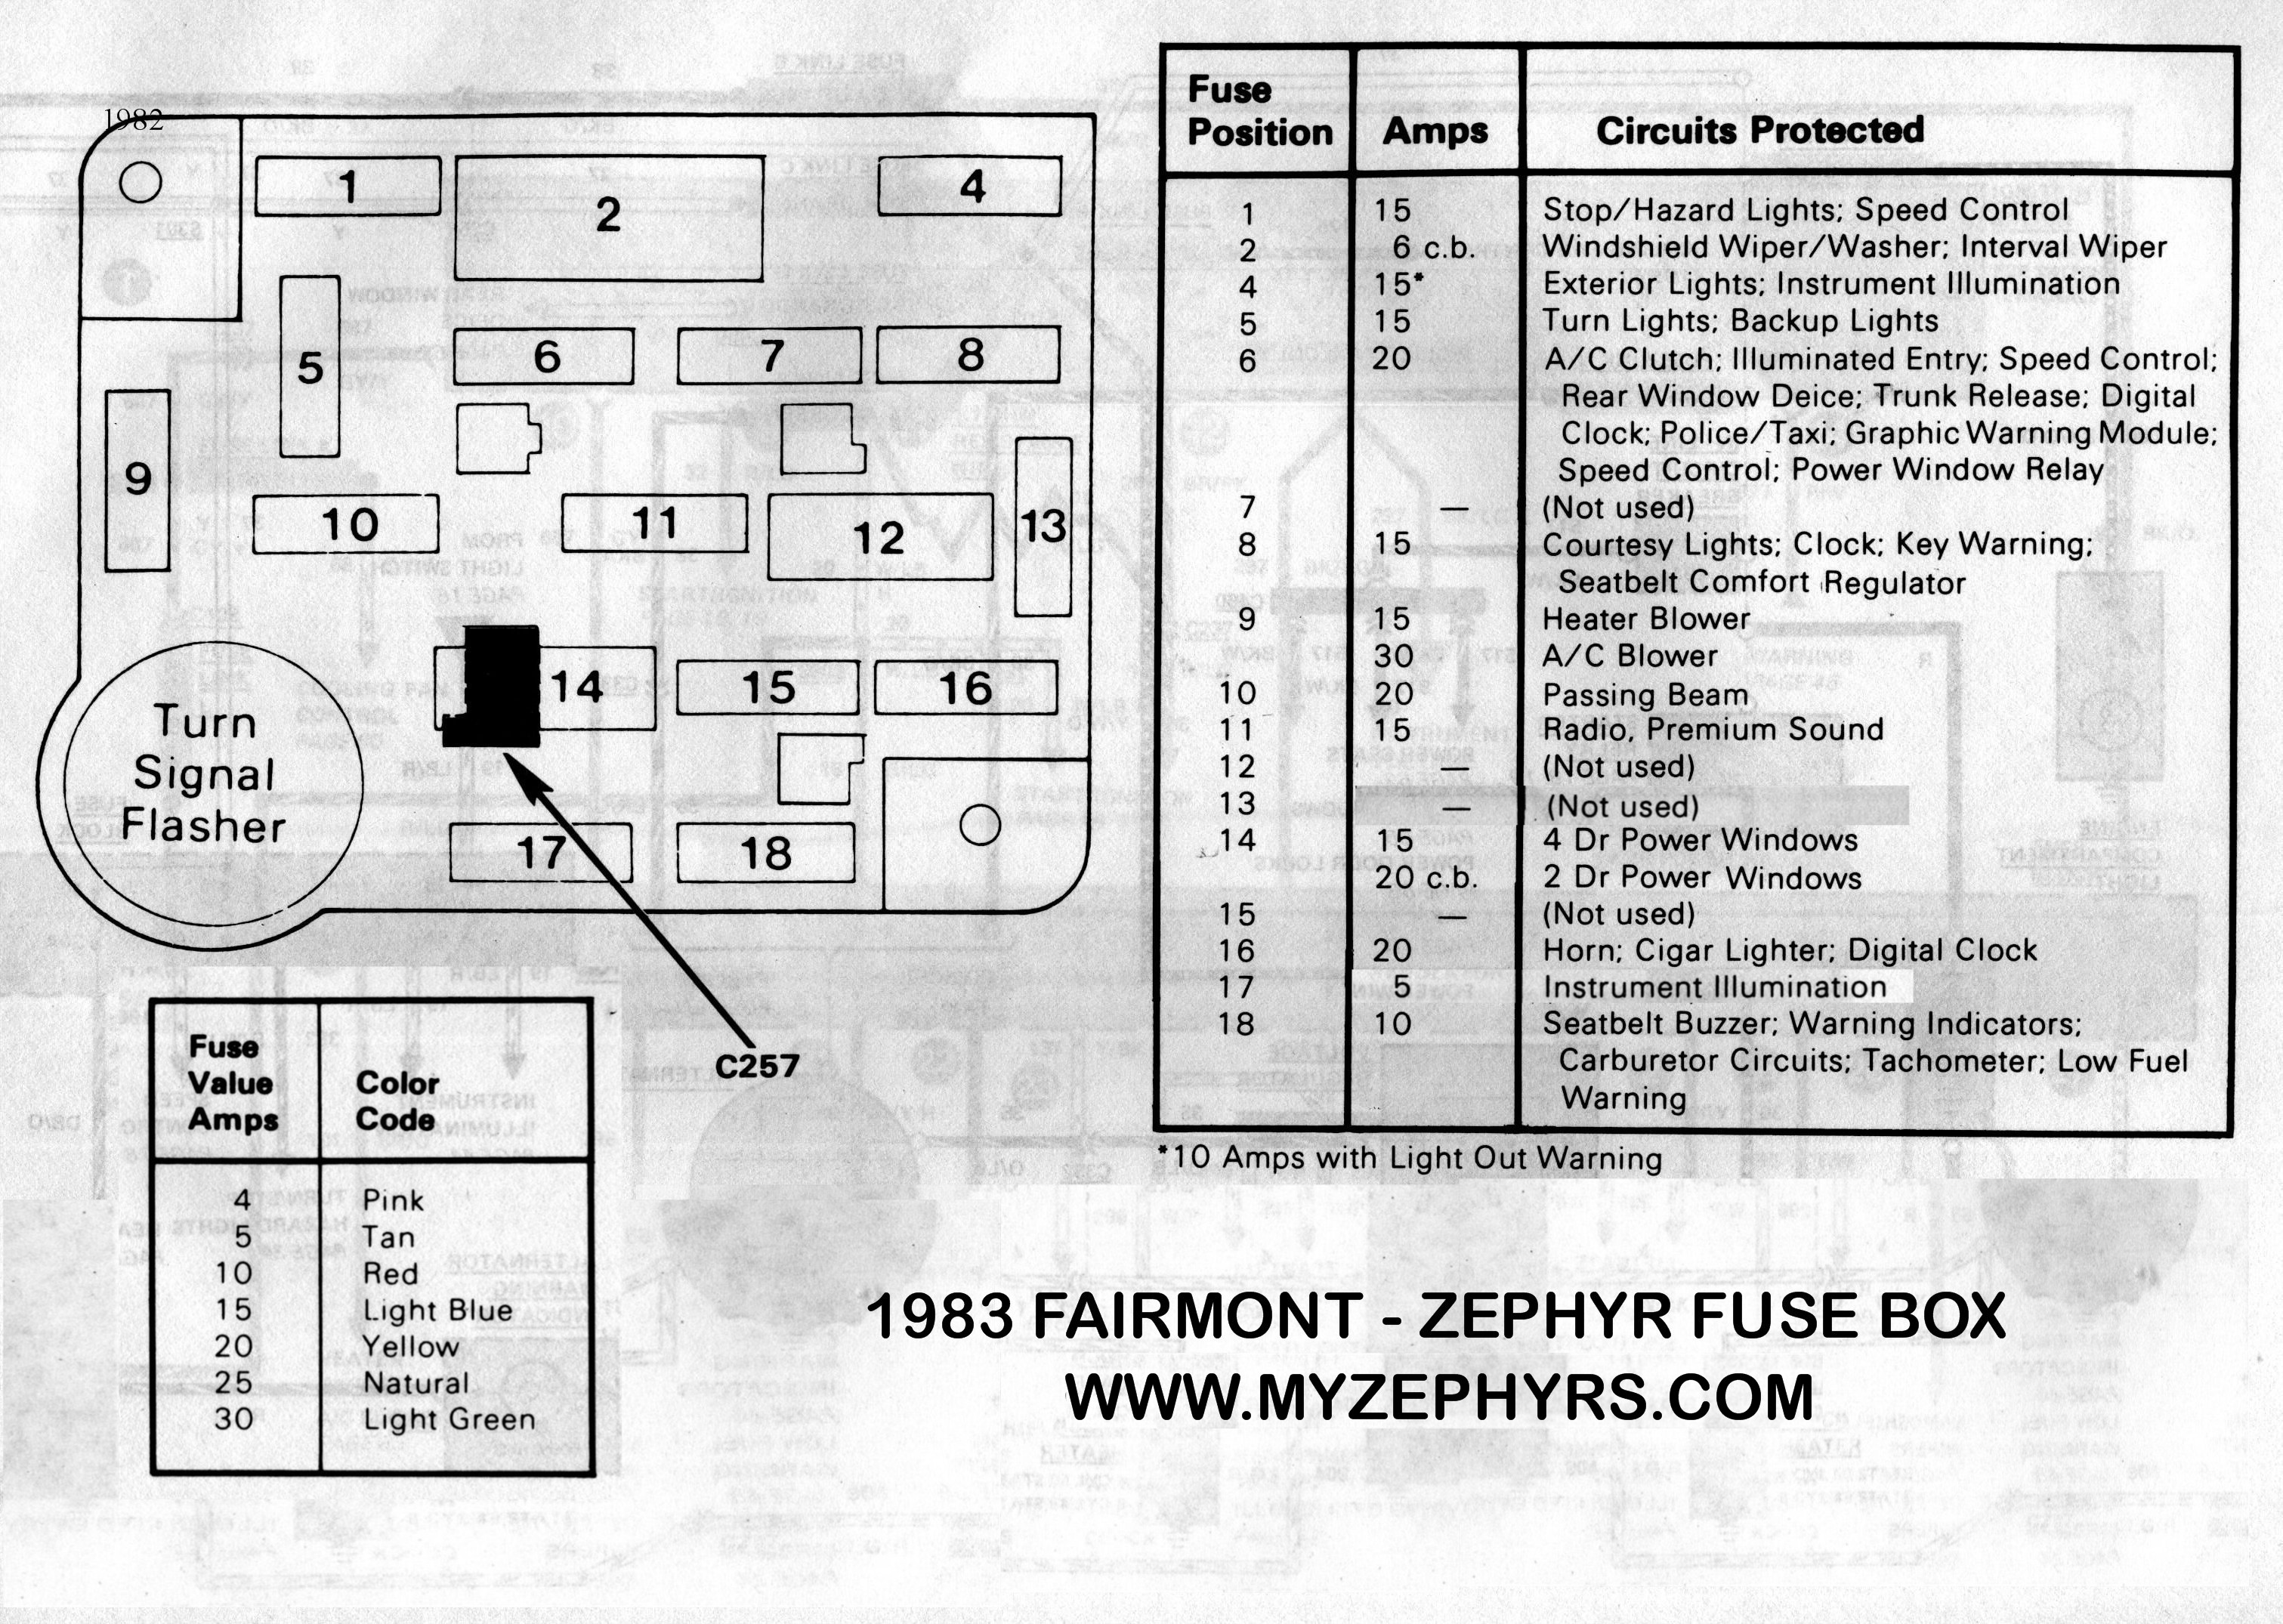 mustang fuse box diagram similiar 99 mustang fuse panel diagram keywords 1978 mustang fuse box diagram 1978 engine image for